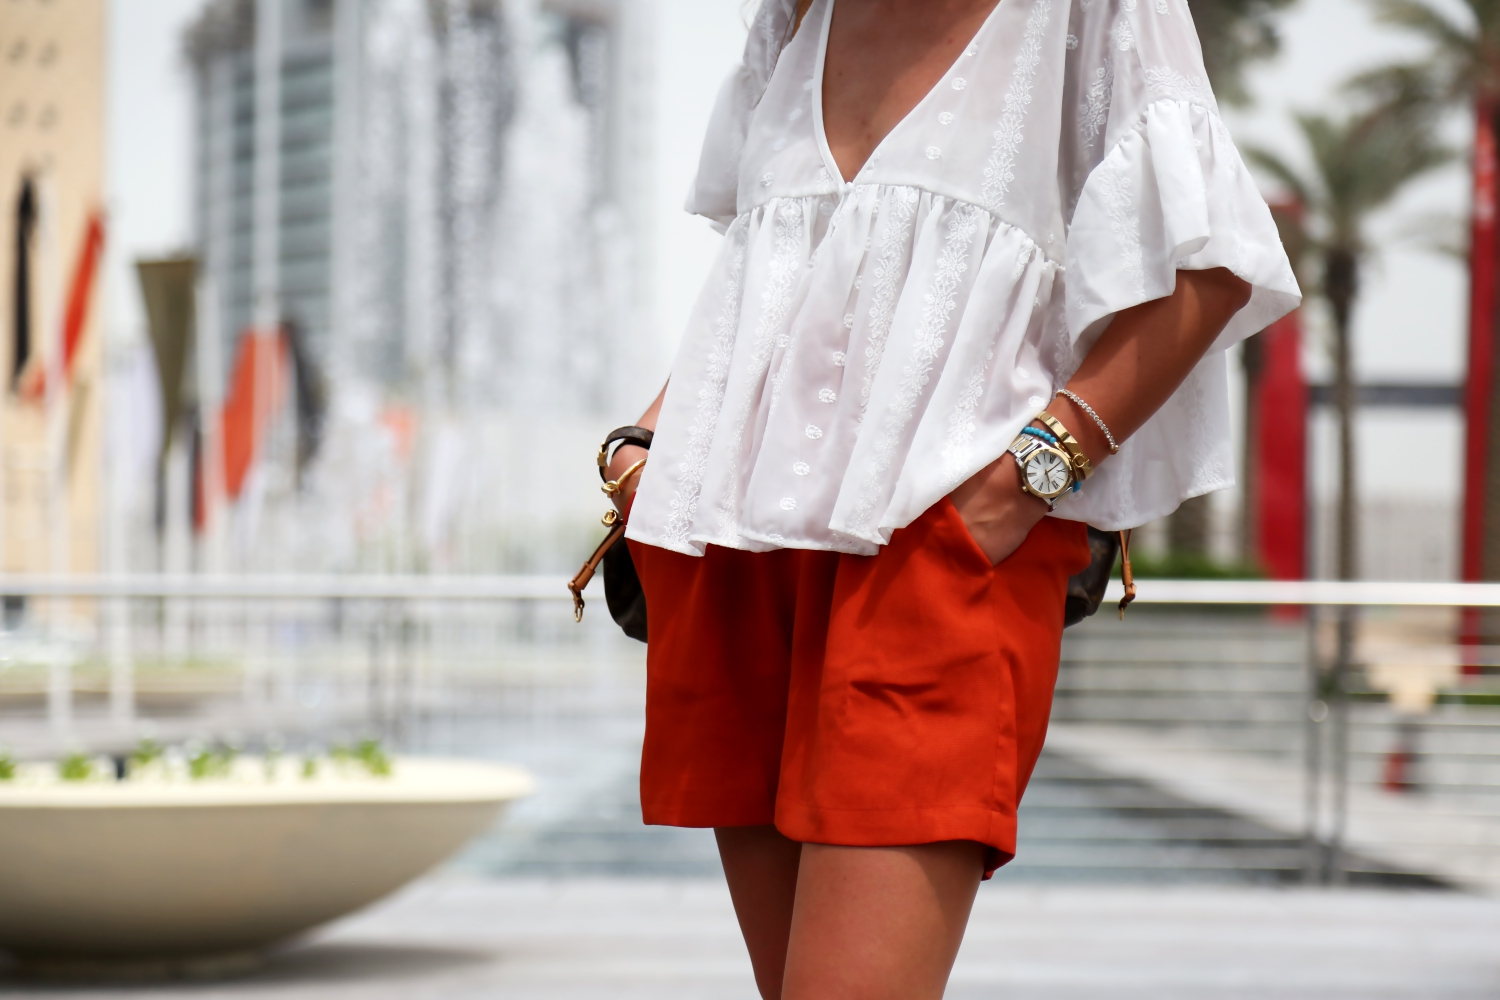 outfit-edited-shorts-michael-kors-watch-bracelets-details-fashionblogger-dubai-travel-look